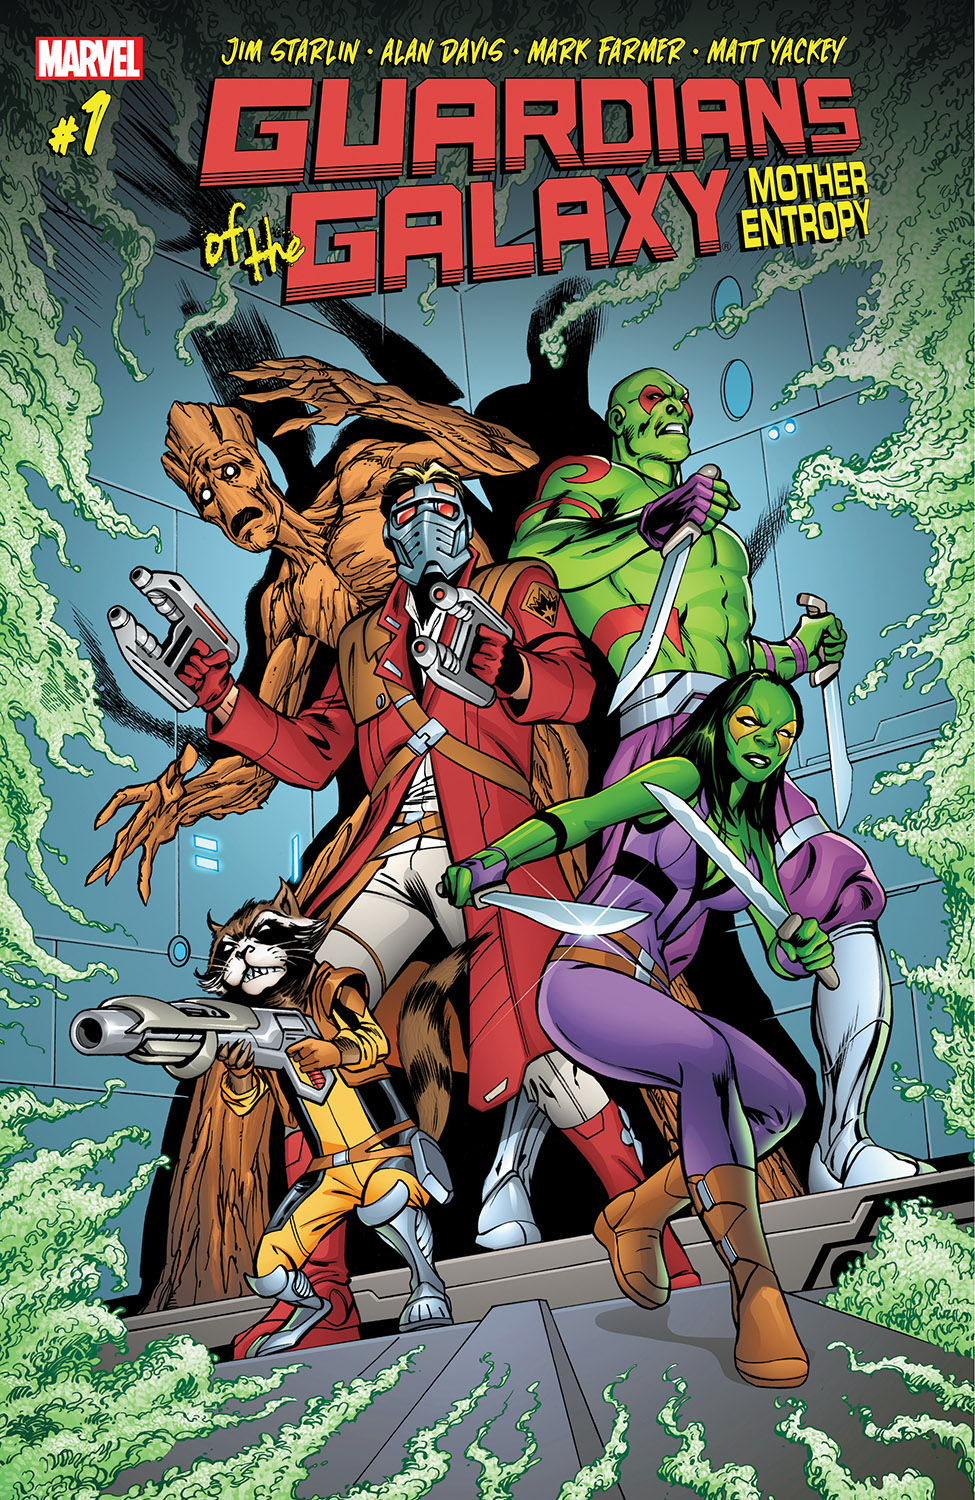 GUARDIANS OF THE GALAXY: MOTHER ENTROPY (MS 5)